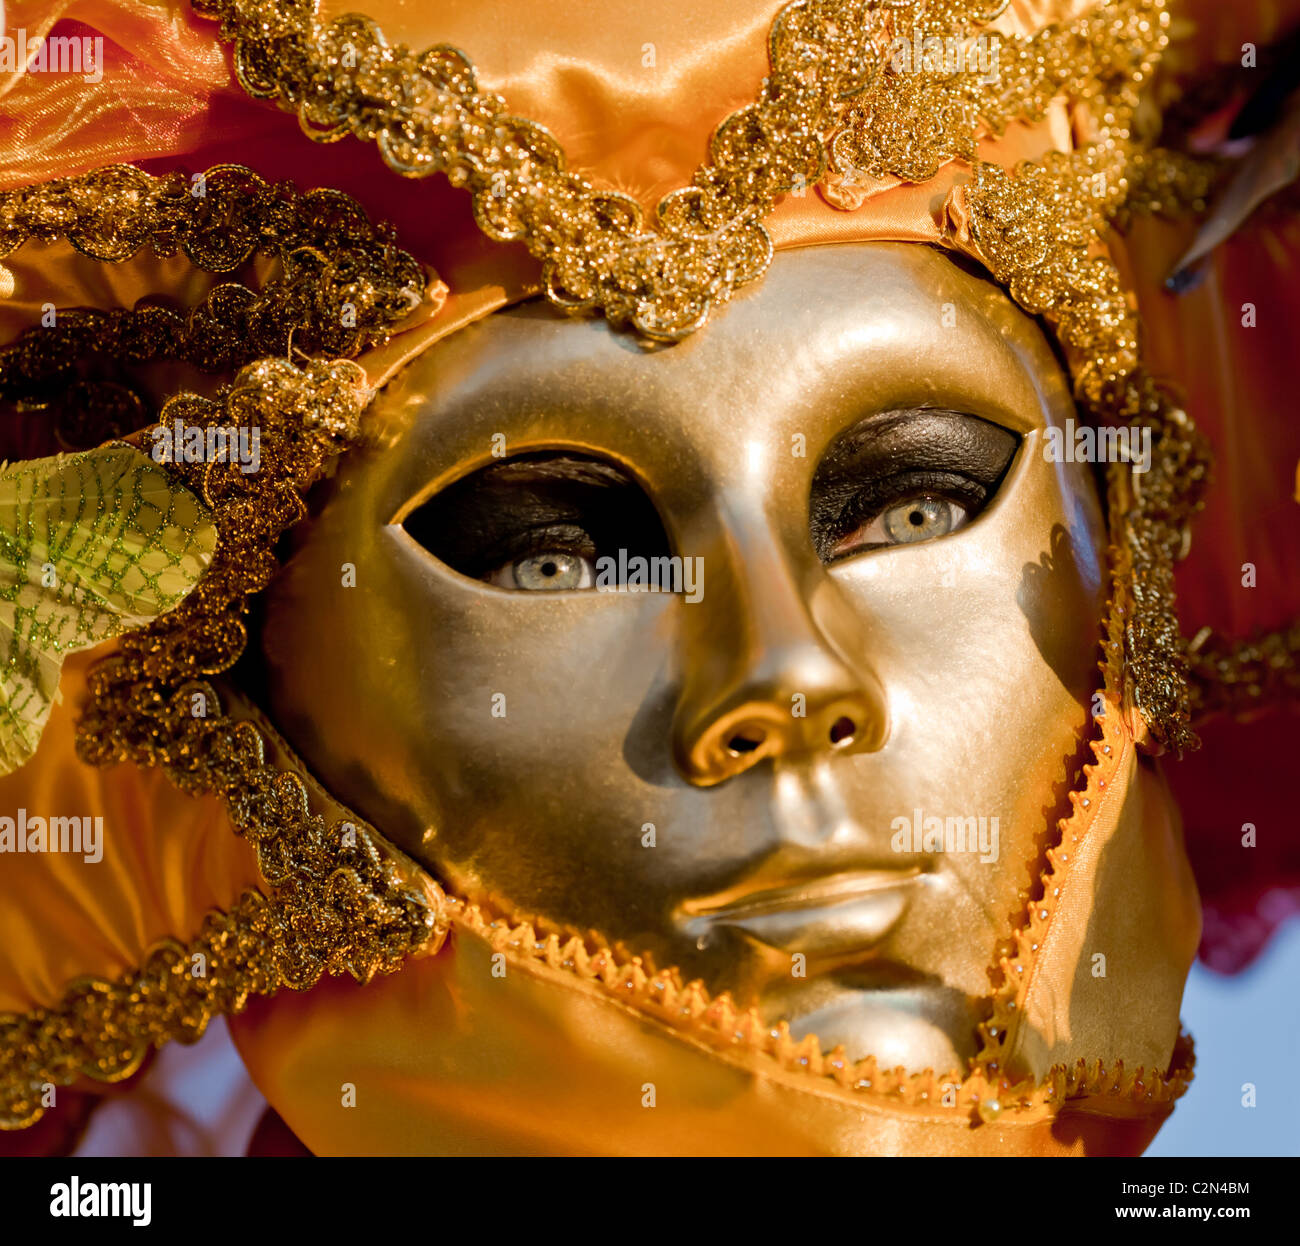 A woman wearing a golden mask during Venice carnival, Venice, Italy Stock Photo